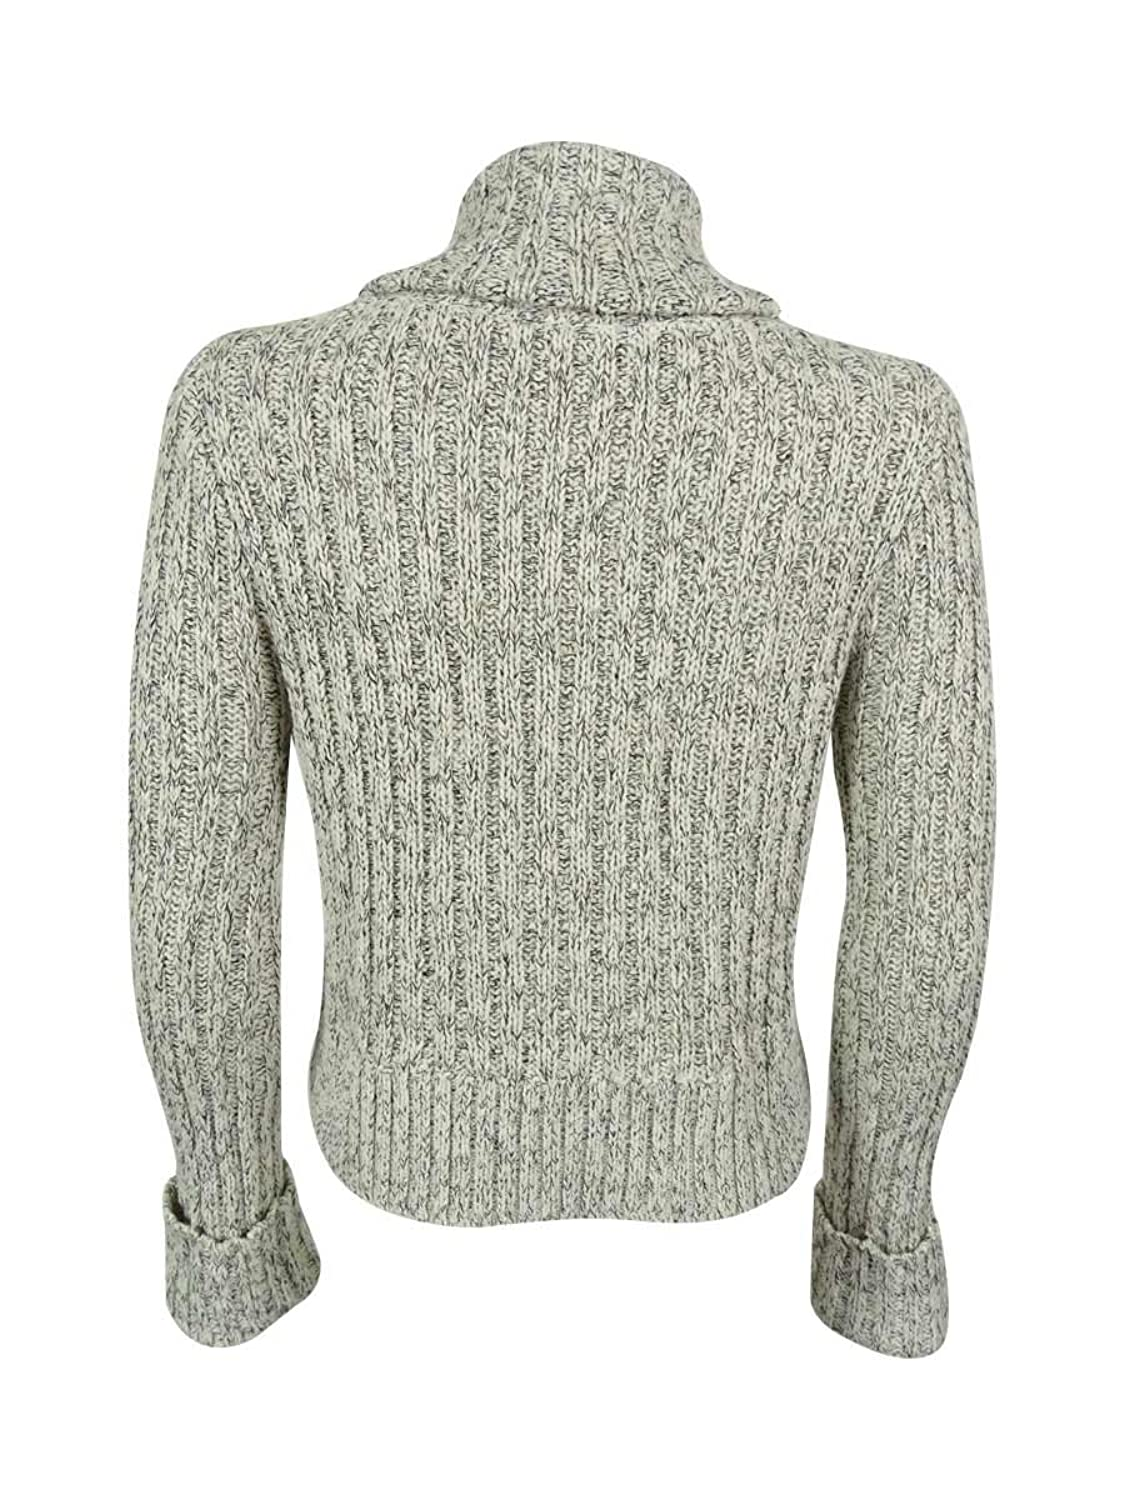 Free People Womens Marled Turtleneck Crop Sweater